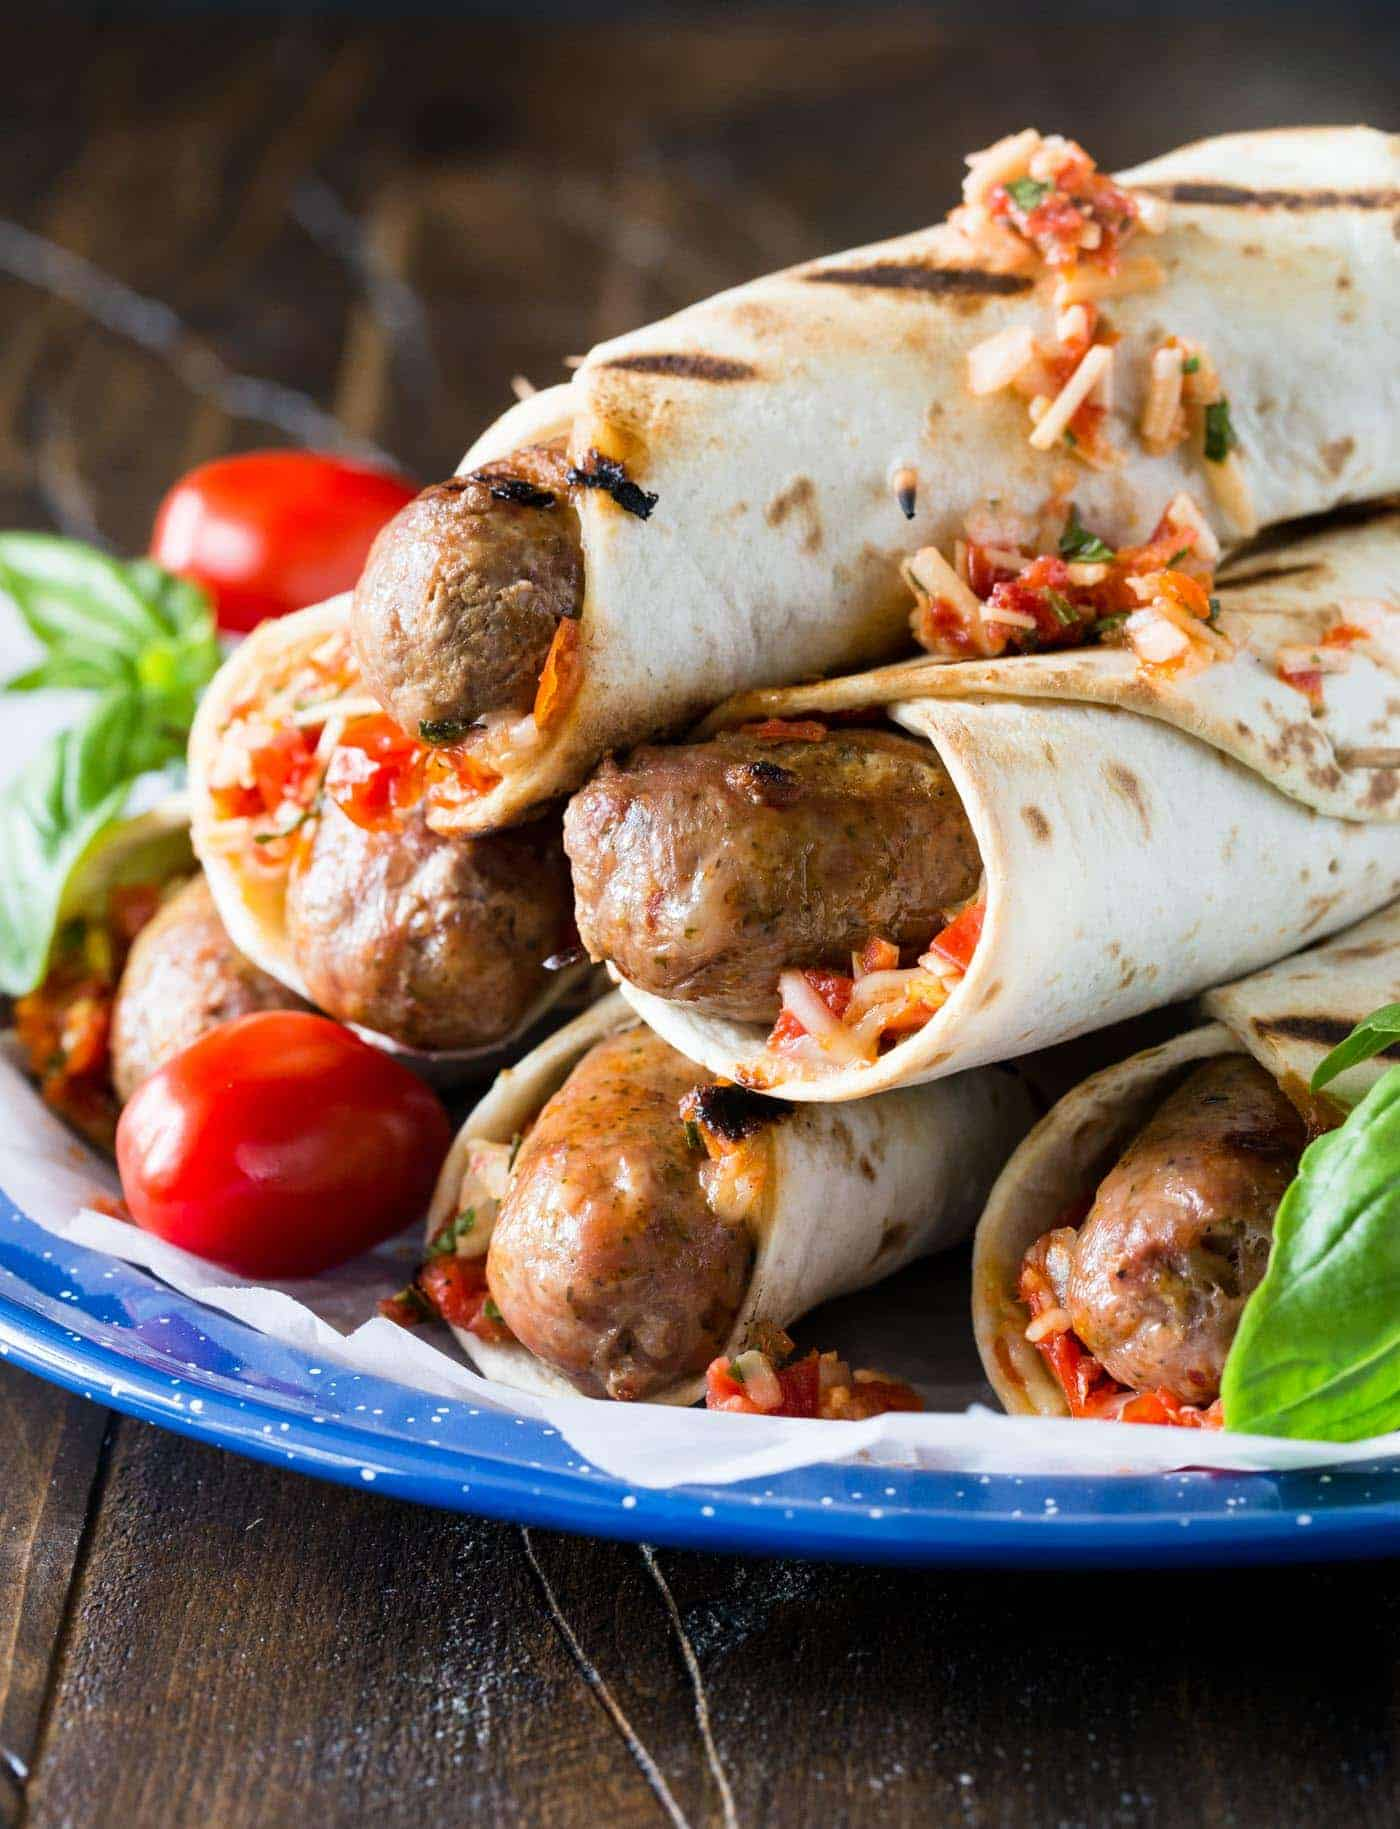 Picture of Grilled Italian Sausages on a blue plate. Sausages are wrapped in grilled flatbreads and garnished with a roasted tomato, asiago cheese and basil relish.